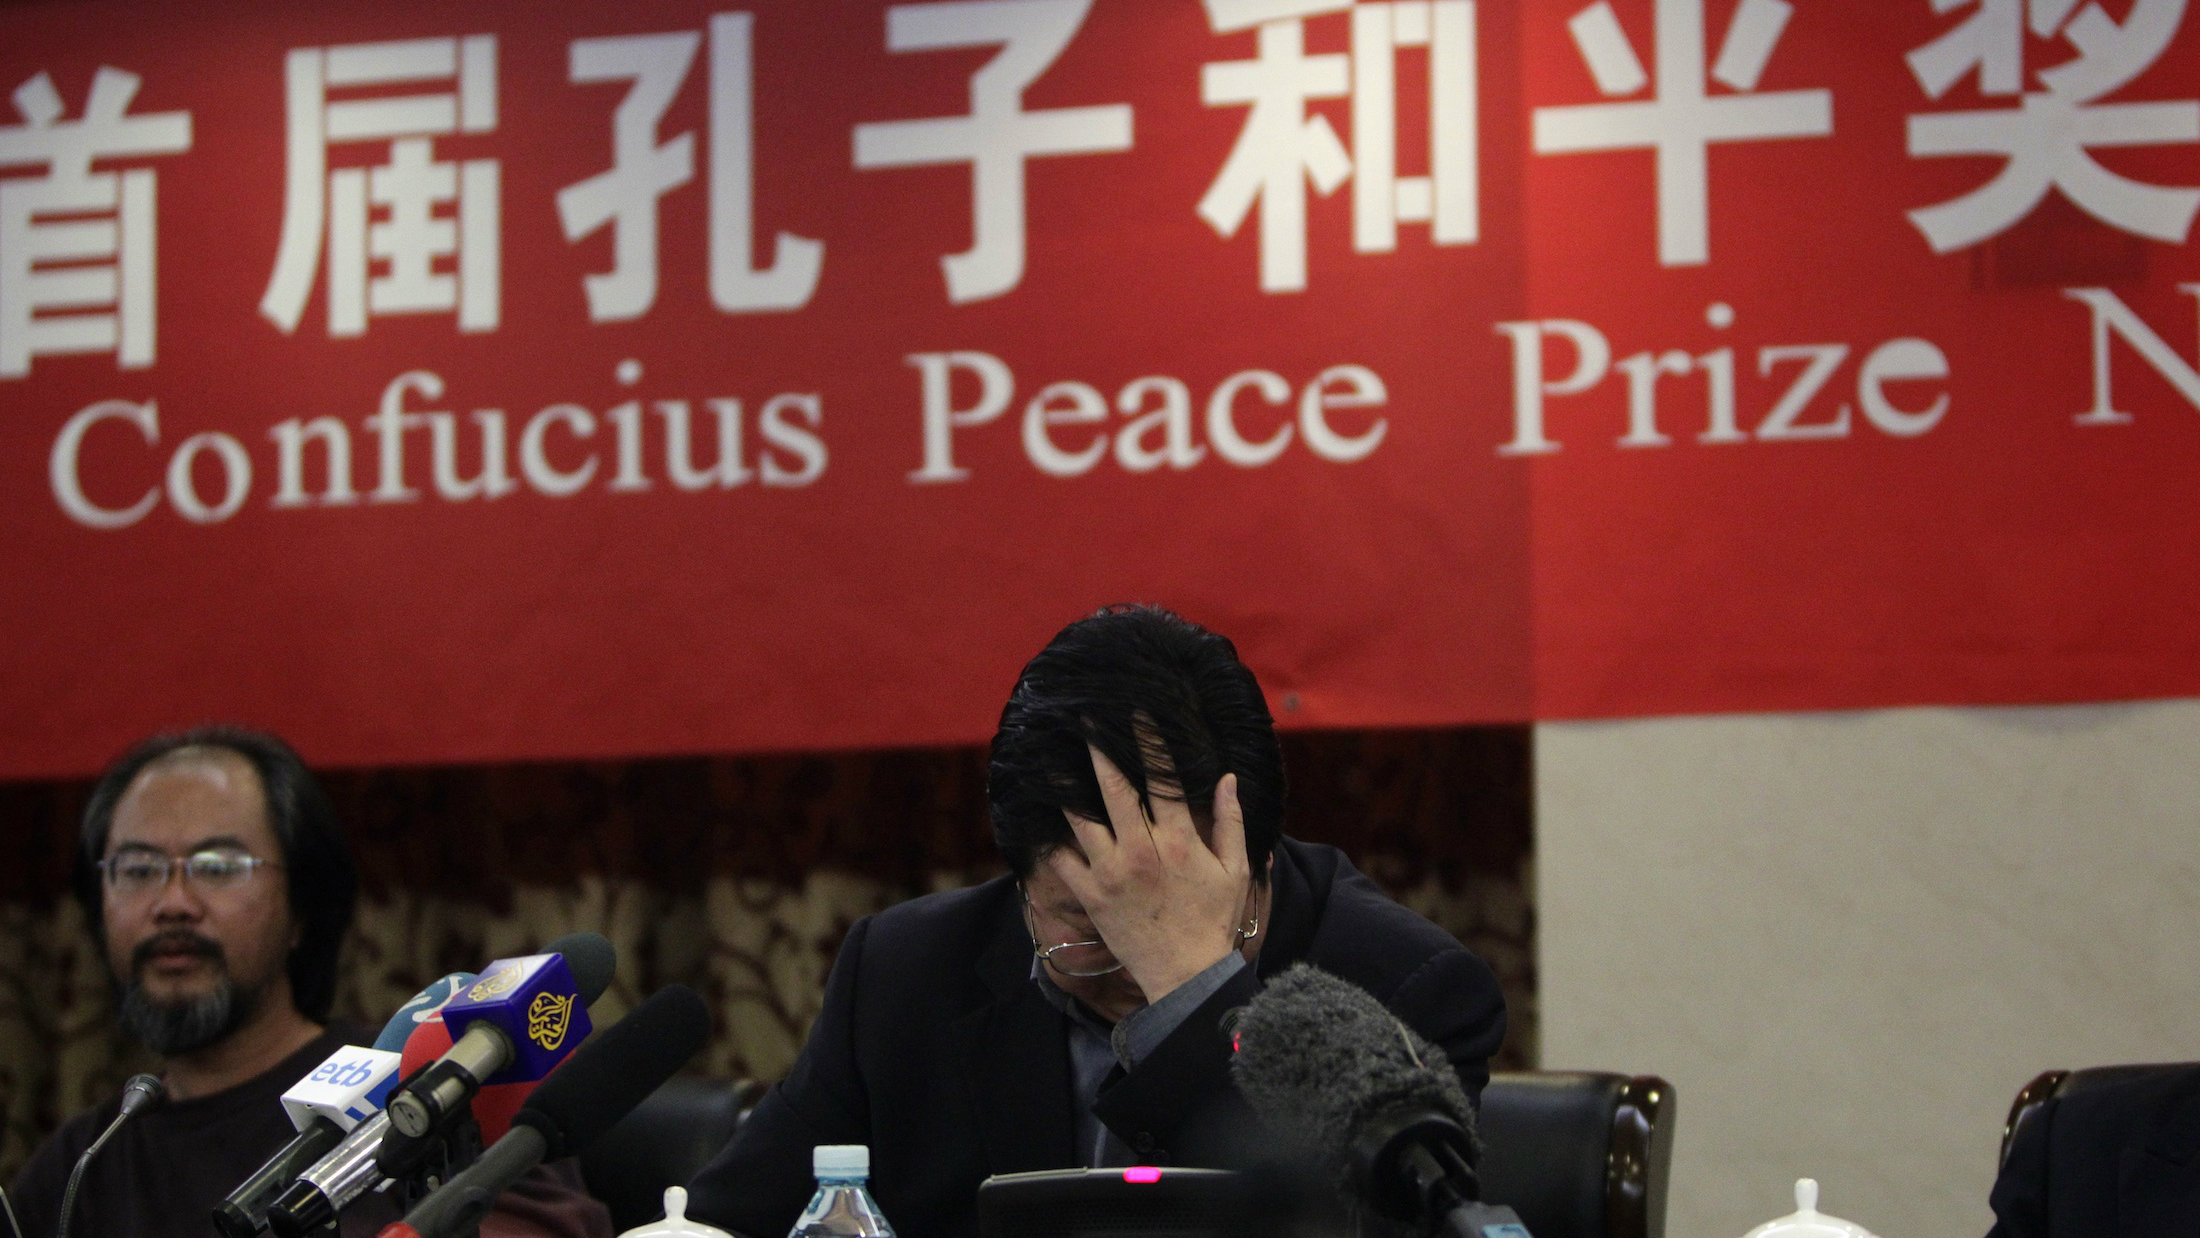 Mugabe has distanced himself from the Confucius Peace Prize.